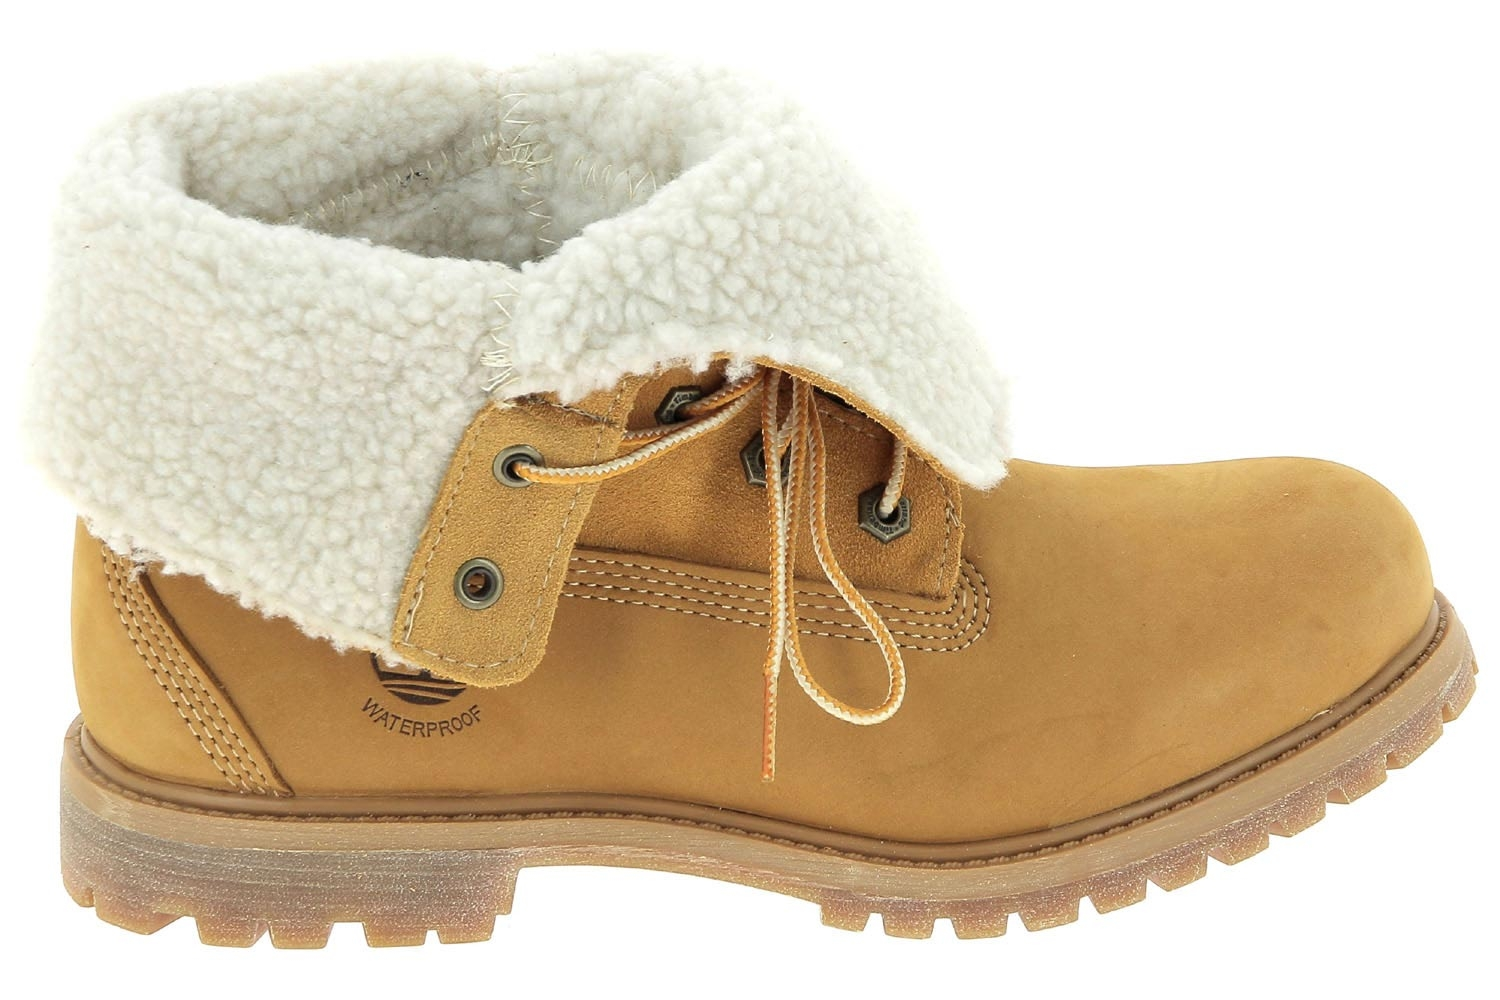 Chaussures montantes fourrees timberland jaune authentics